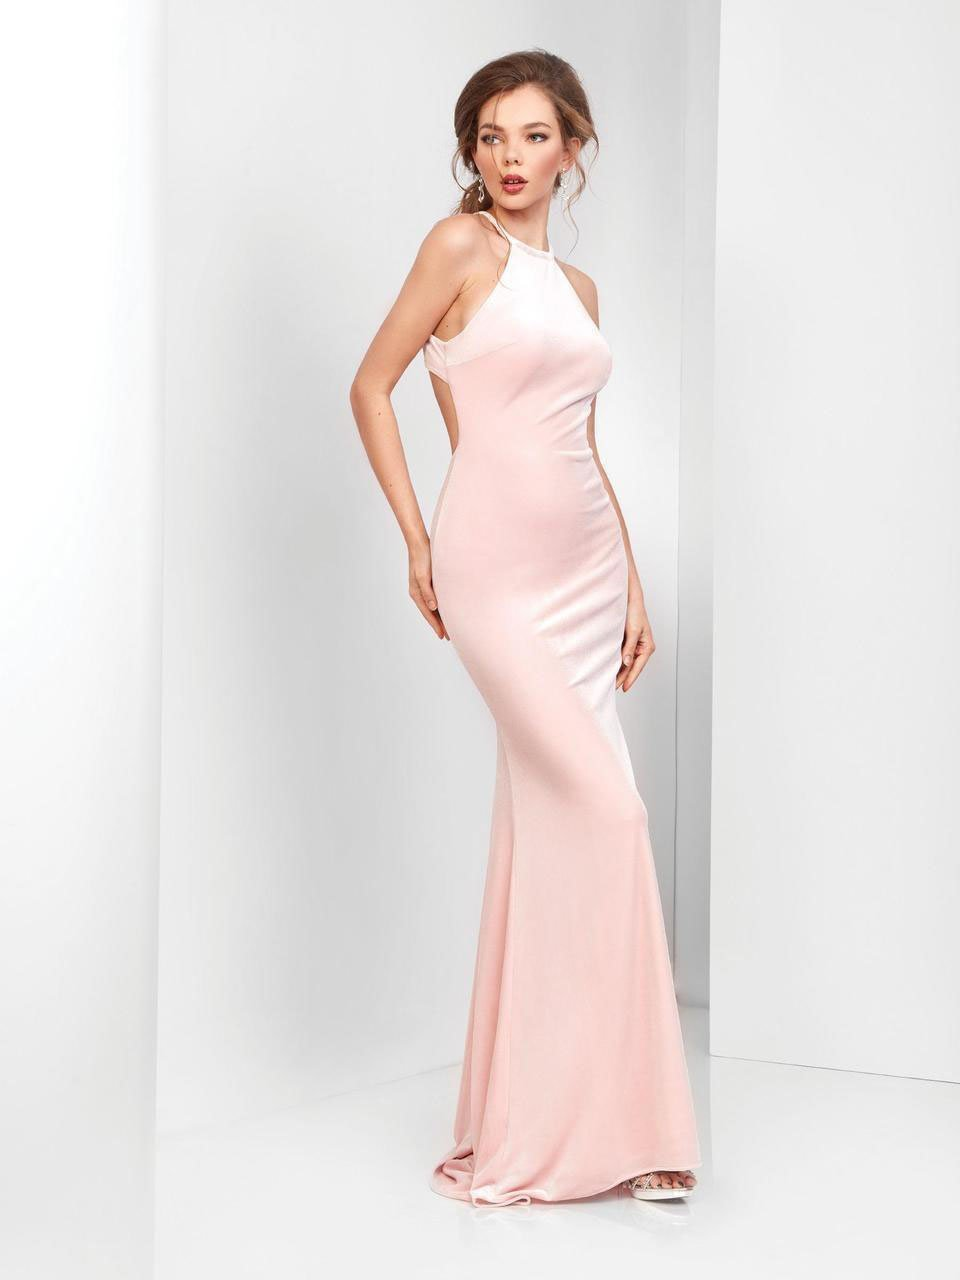 Clarisse - 3468 Velvet Halter Cutout Sheath Gown in Pink